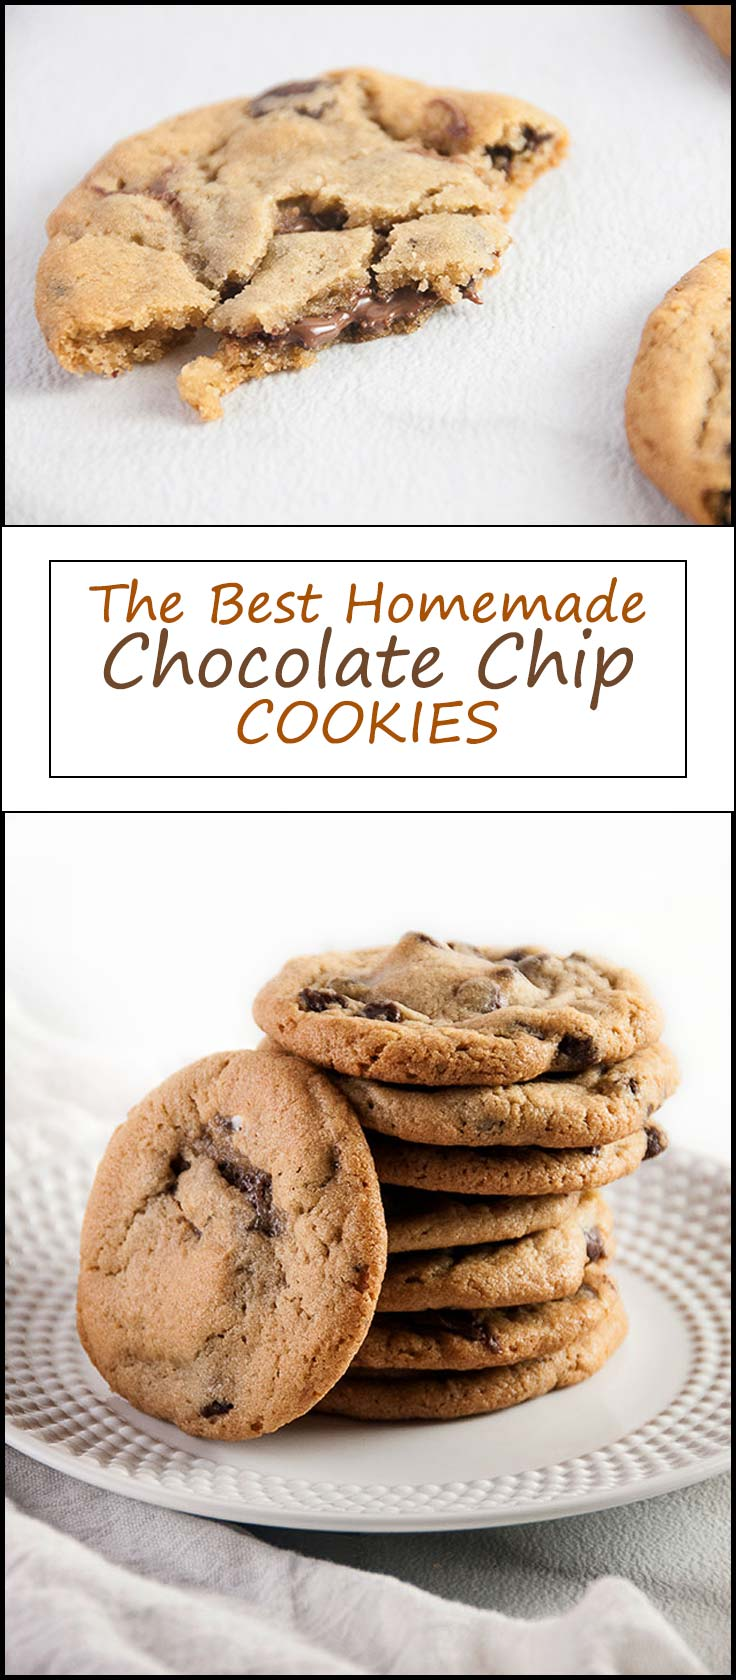 The Best Chocolate Chip Cookies from www.seasonedsprinkles.com